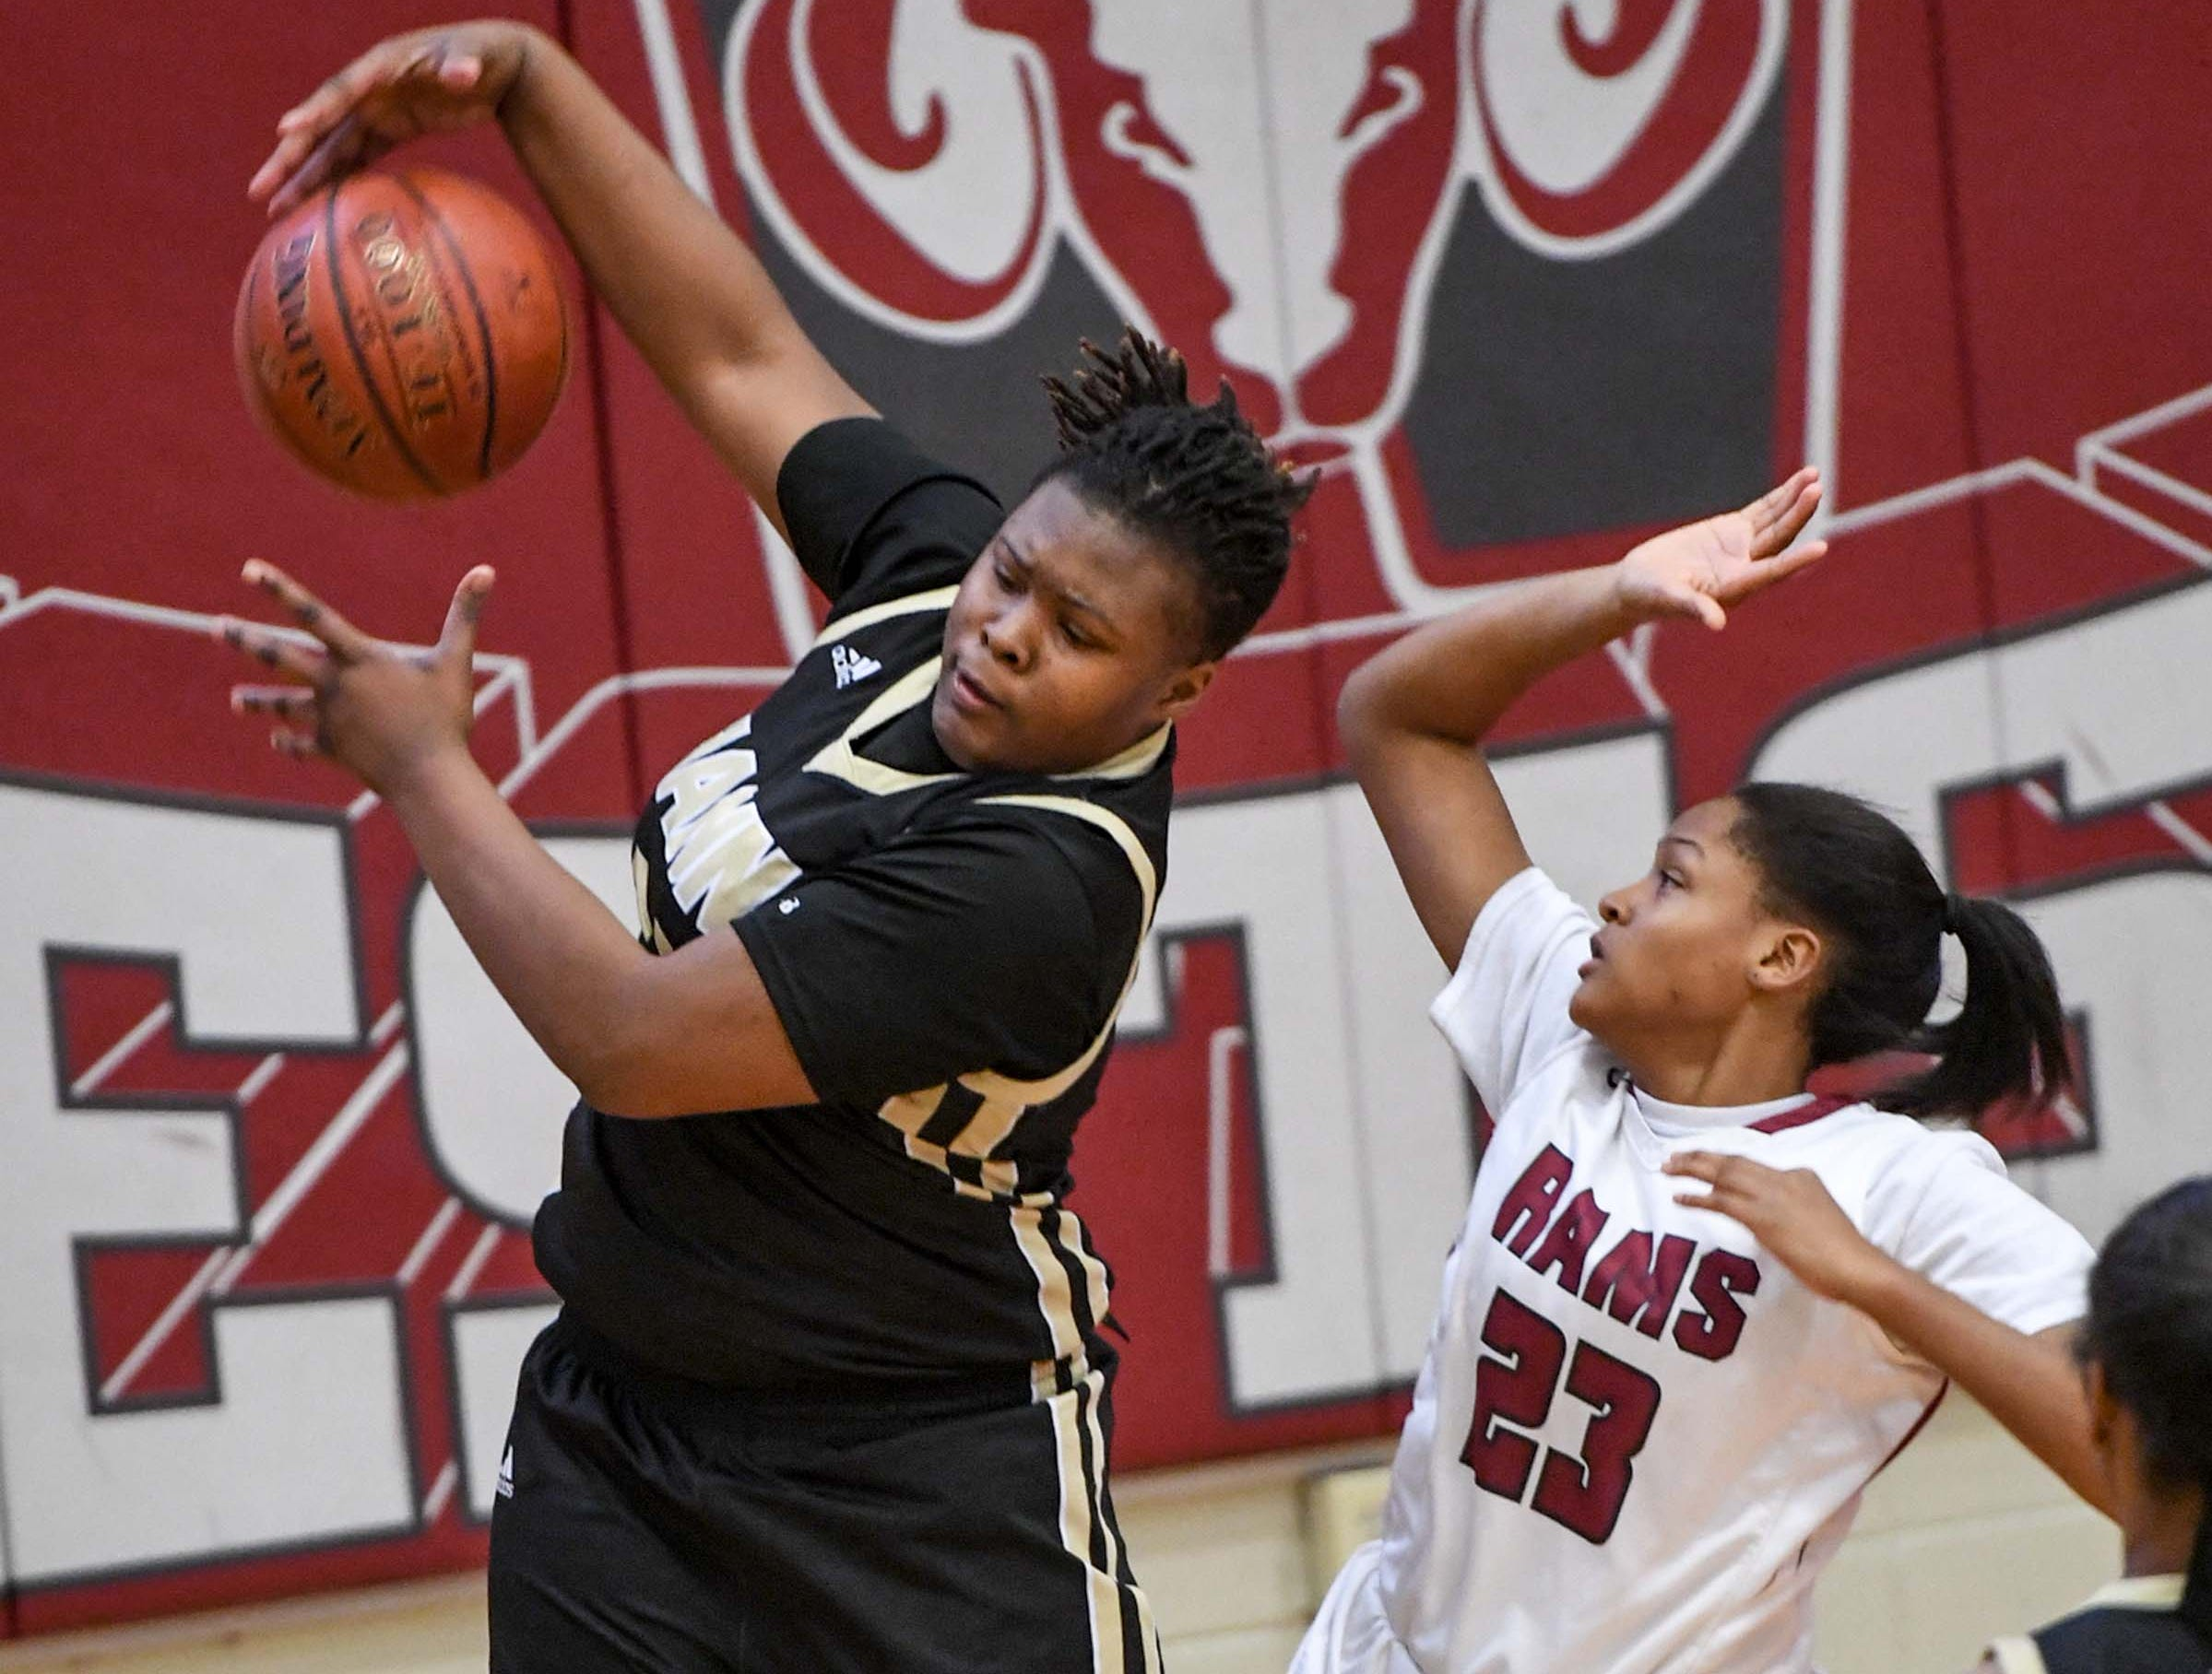 TL Hanna freshman Dro Lee(33) rebounds near Westside freshman Keazia Hatten(23) during the first quarter at Westside High School in Anderson on Friday.